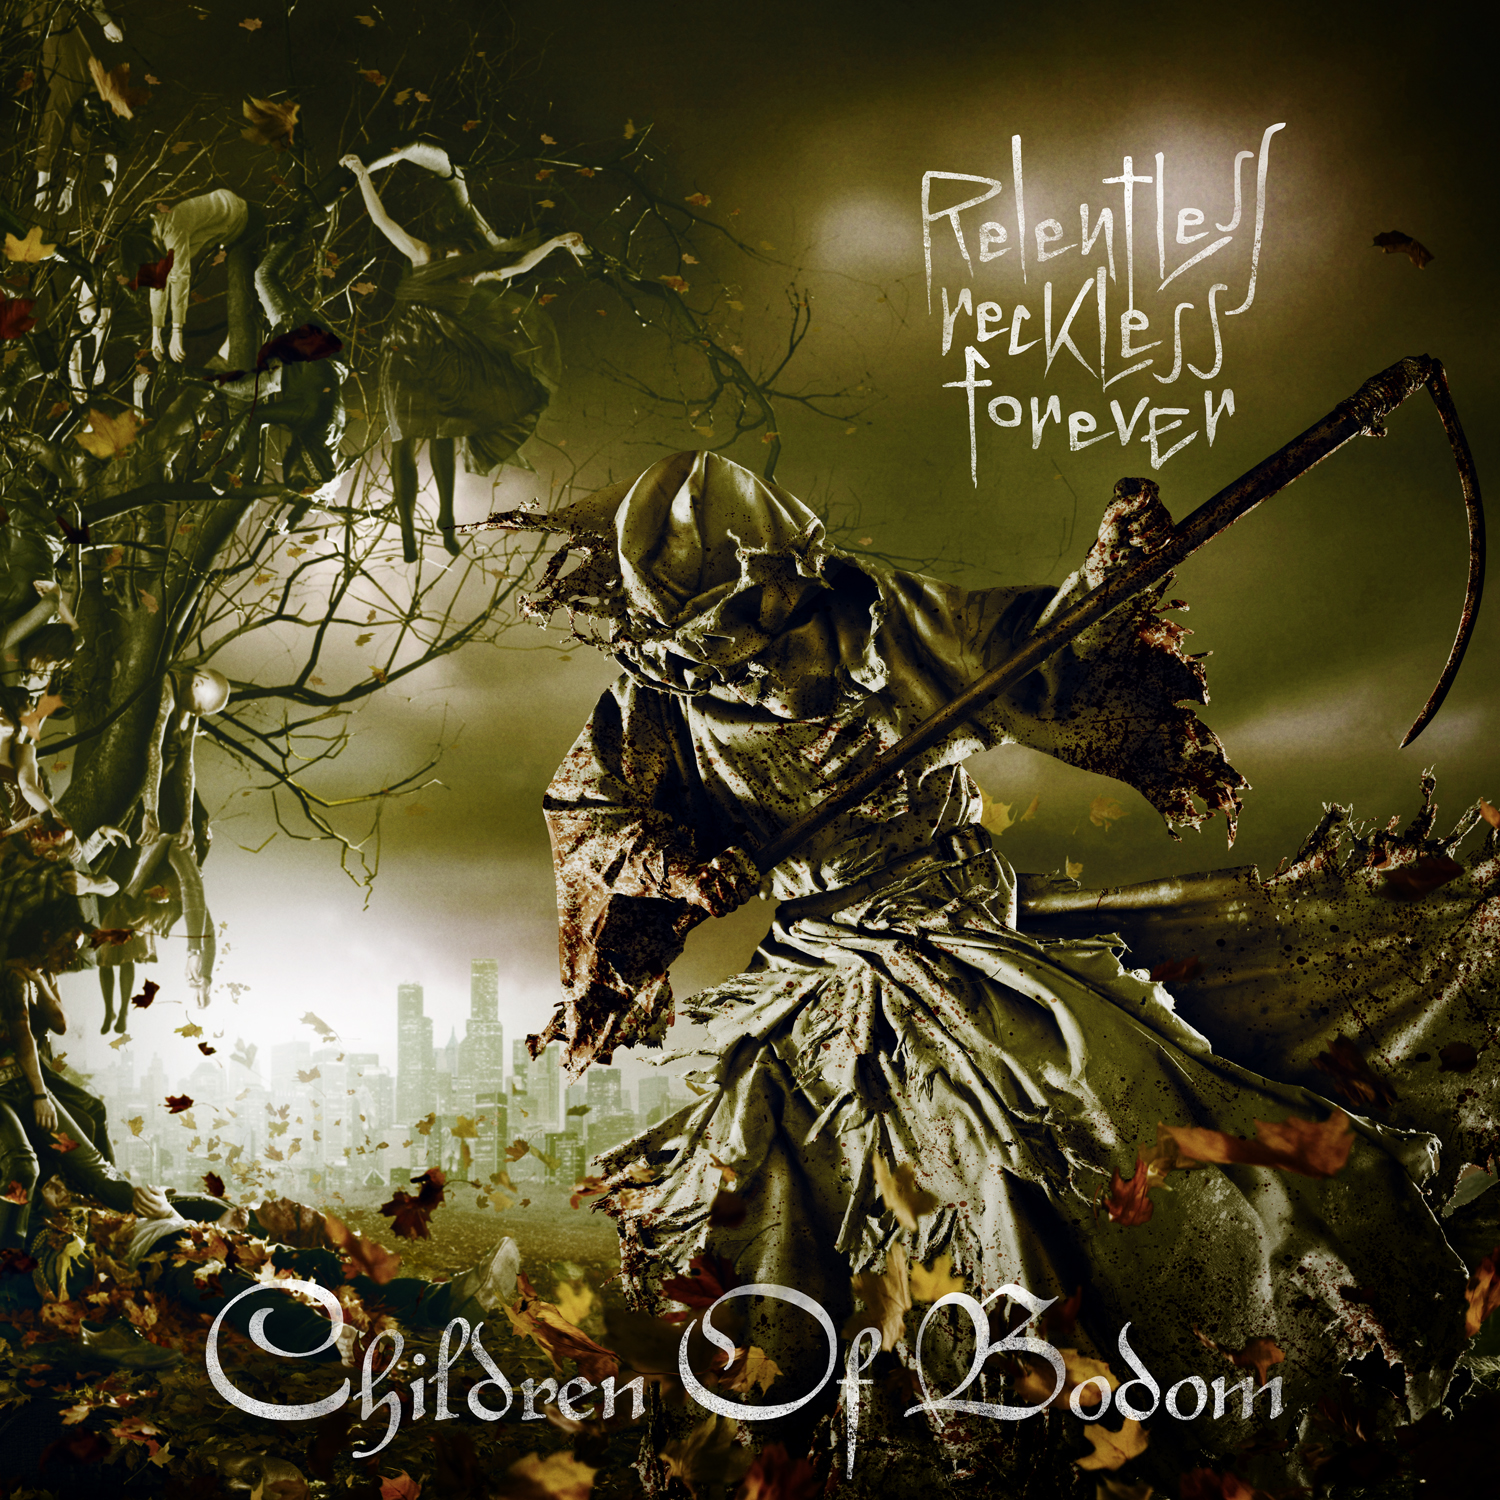 [Multi]Children Of Bodom - Relentless Reckless Forever 2011[MP3]